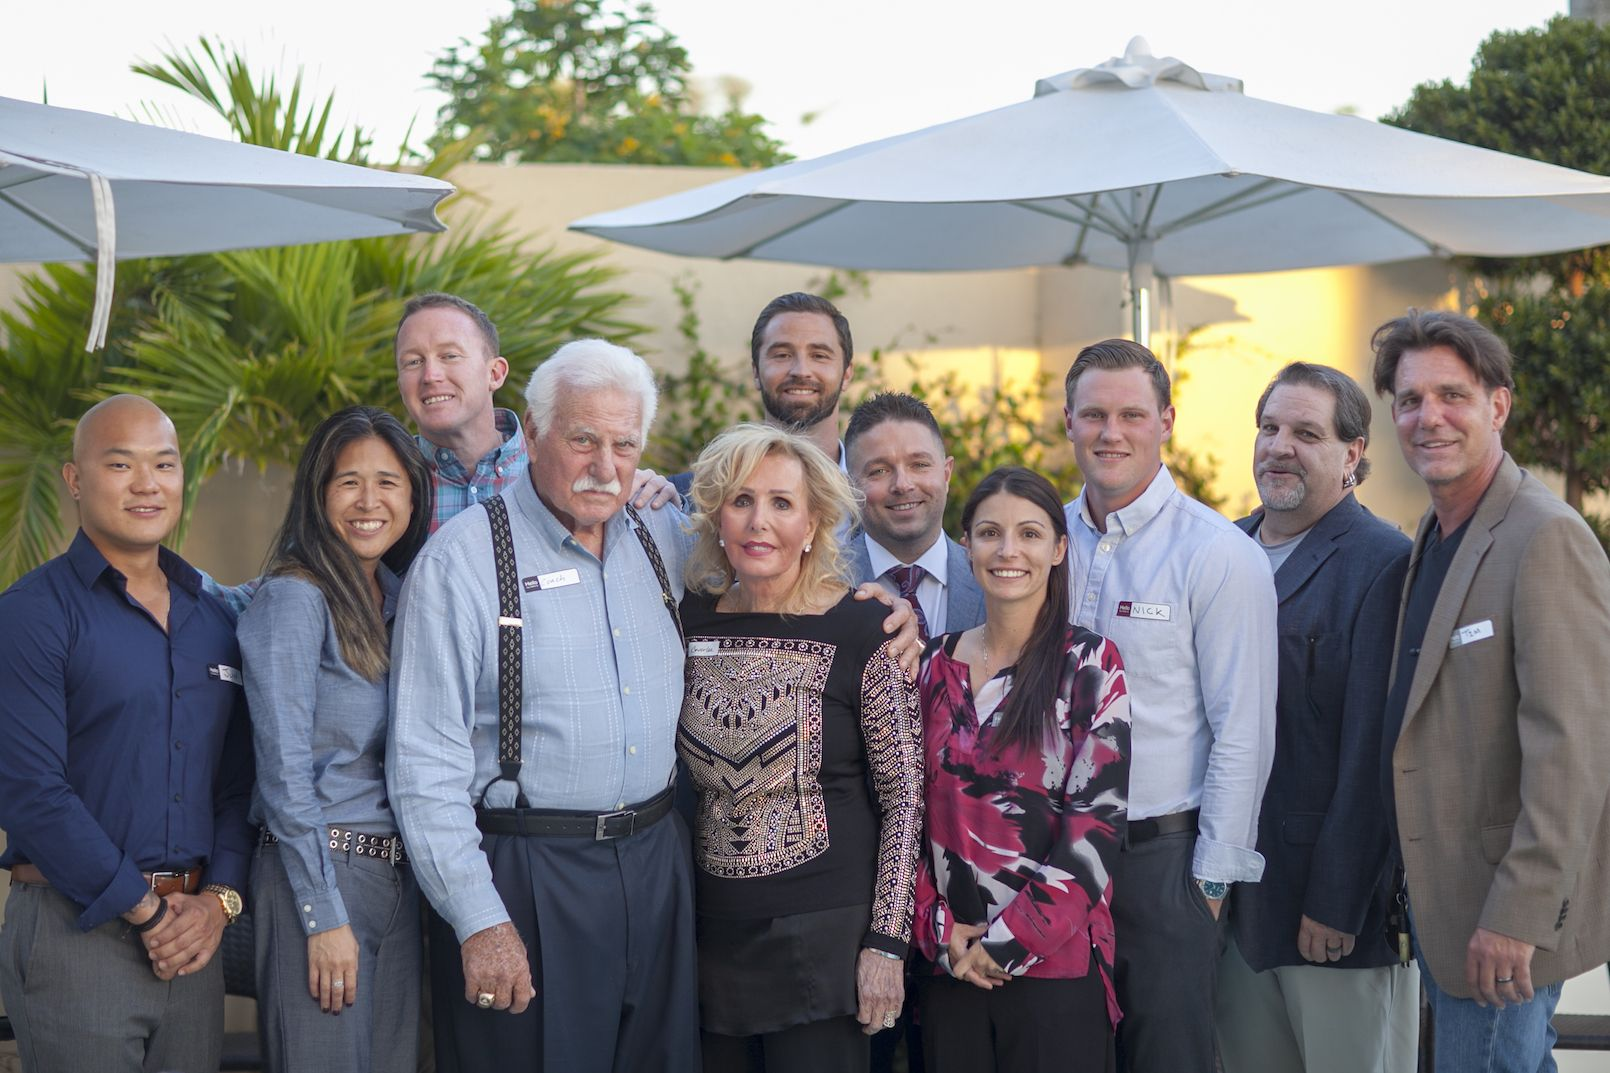 Schnellenberger Family Foundation & Recovery Boot Camp Teams